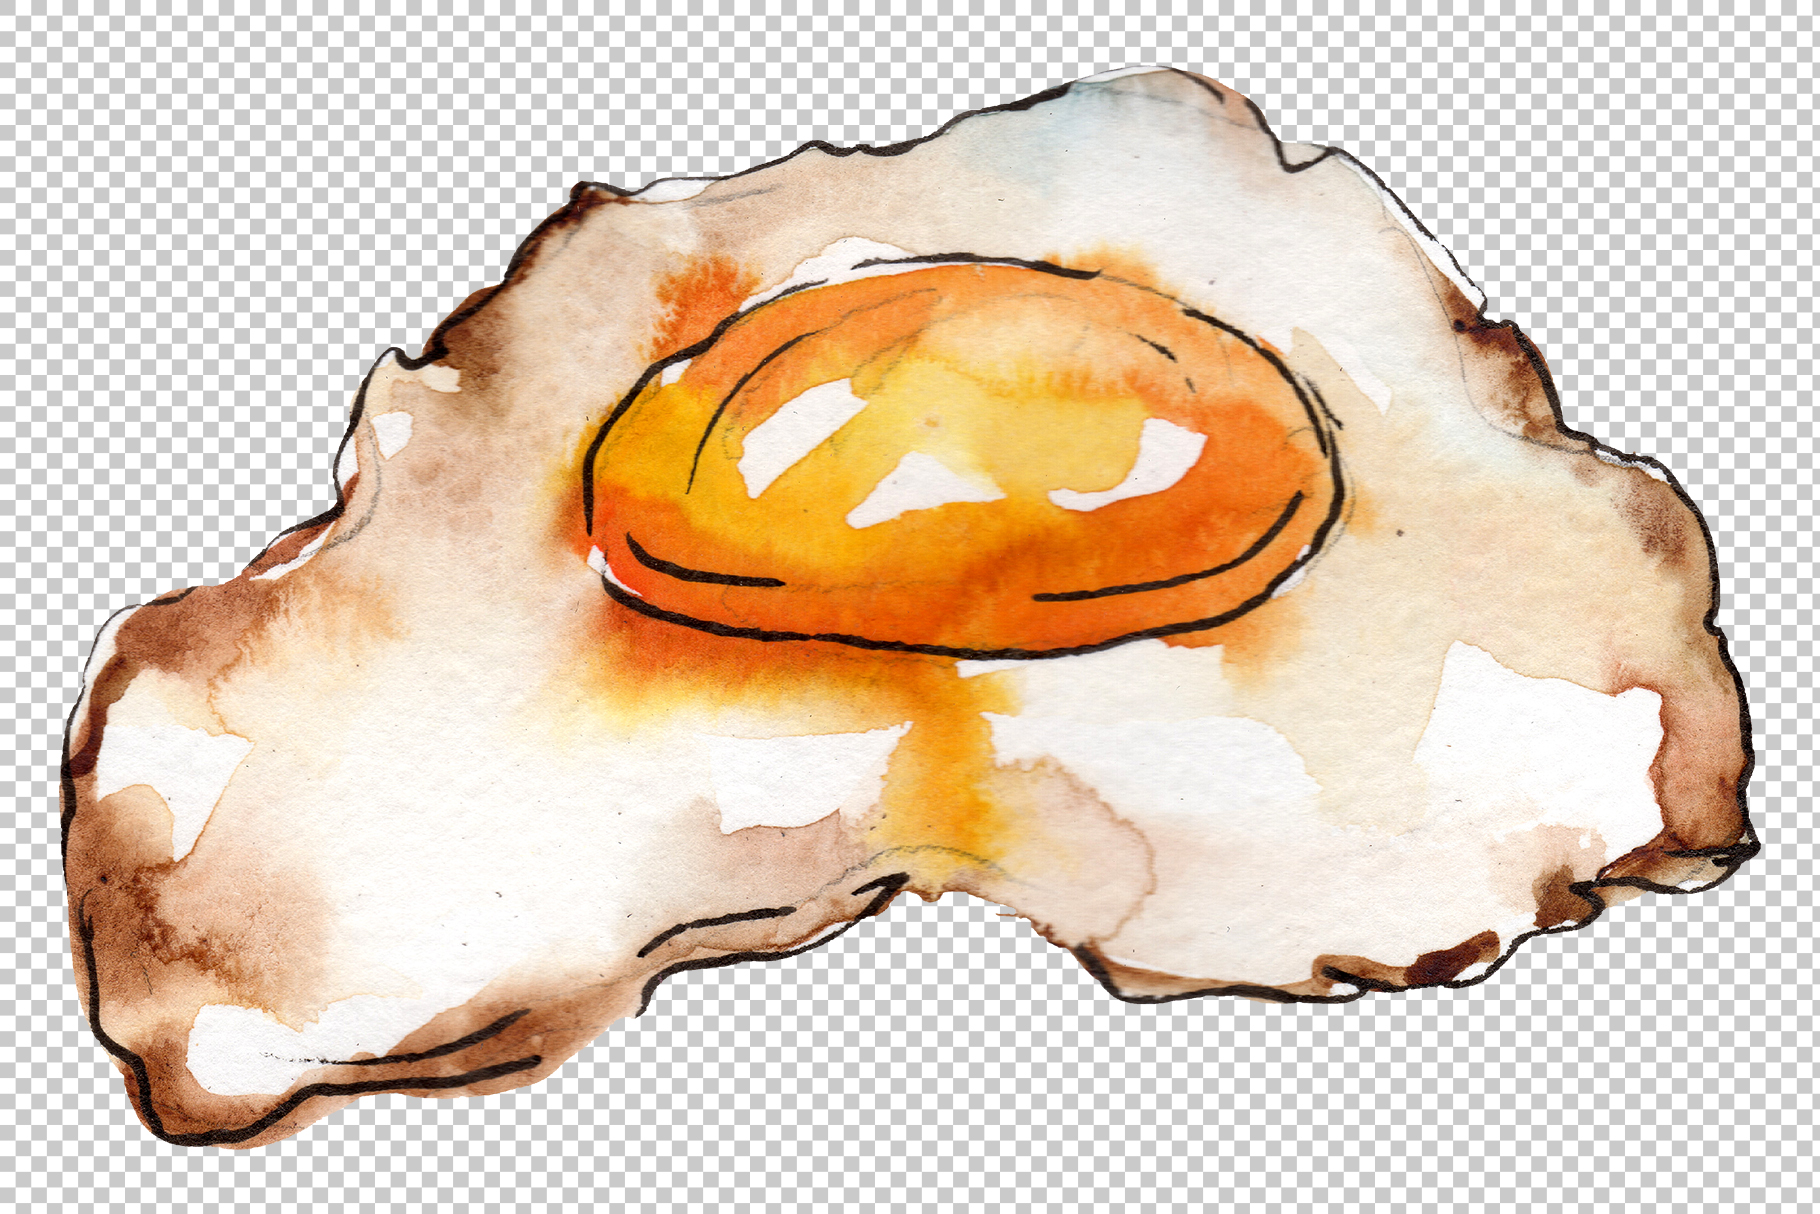 Hamburger for gentleman watercolor png example image 4